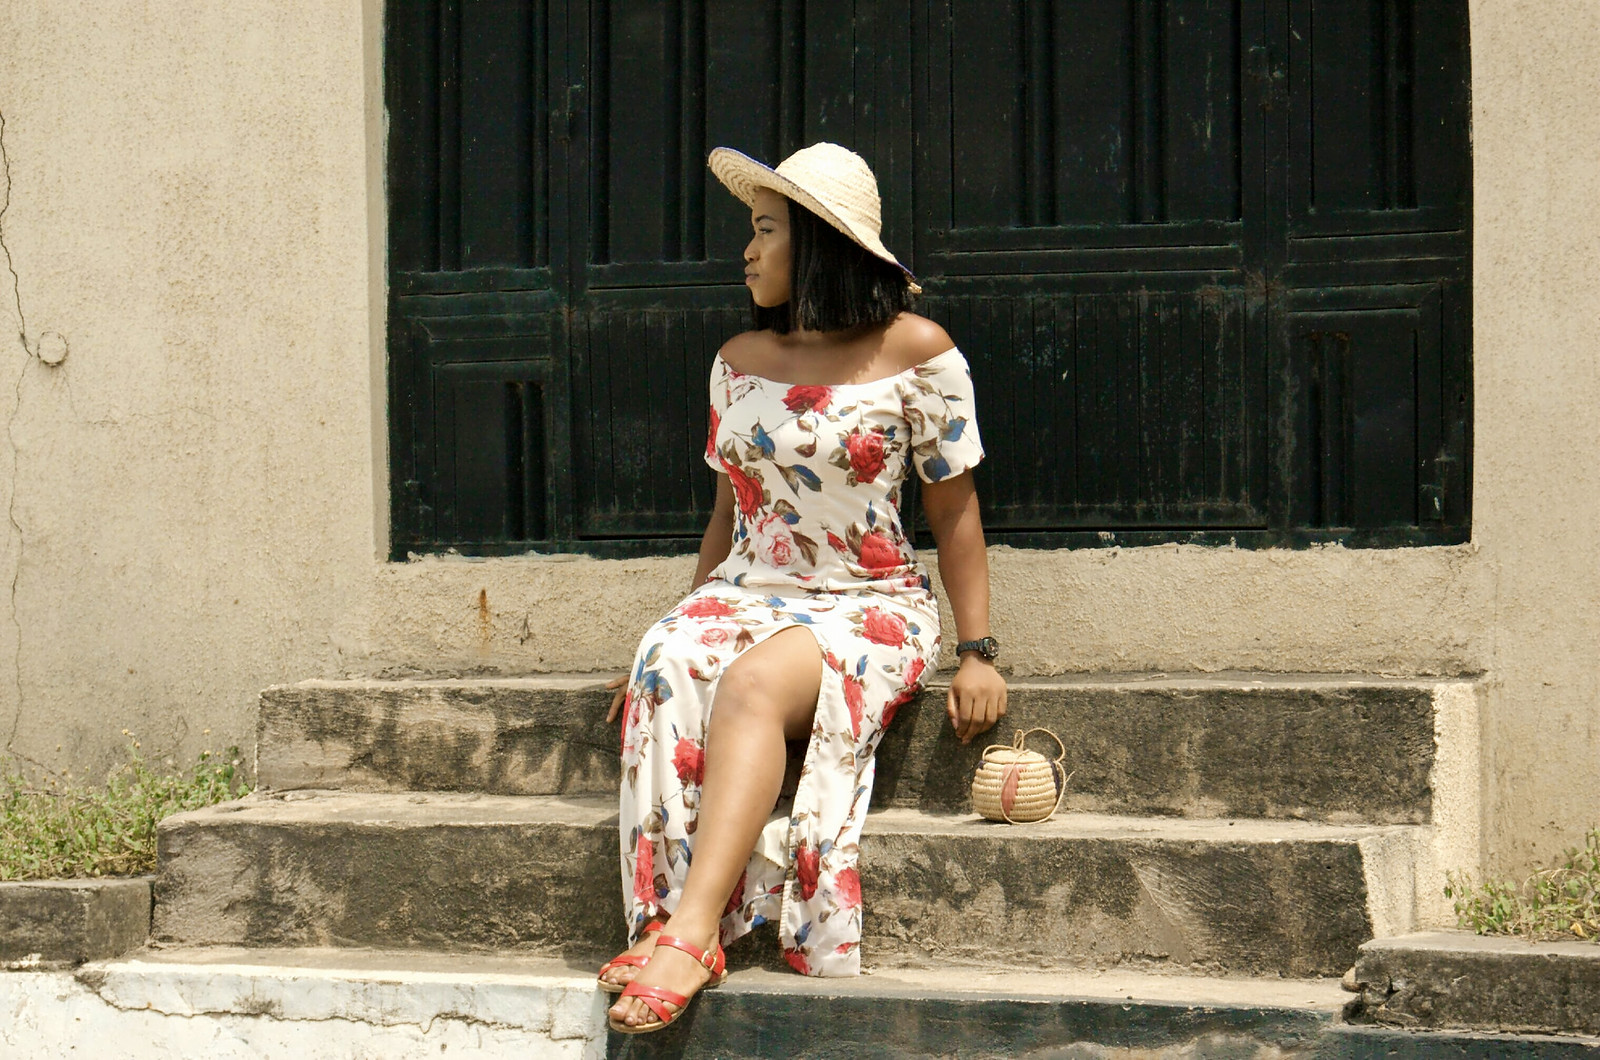 Spring dresses, Maxi dresses, Long sleeve maxi dresses,  Spring dresses Nordstrom,  spring casual dresses, spring dresses to wear to a wedding,  maxi dresses, maxi dresses cheap, maxi  dress, Lagos city chic, Lagos city fashion, Lagos bloggers, Nigerian b